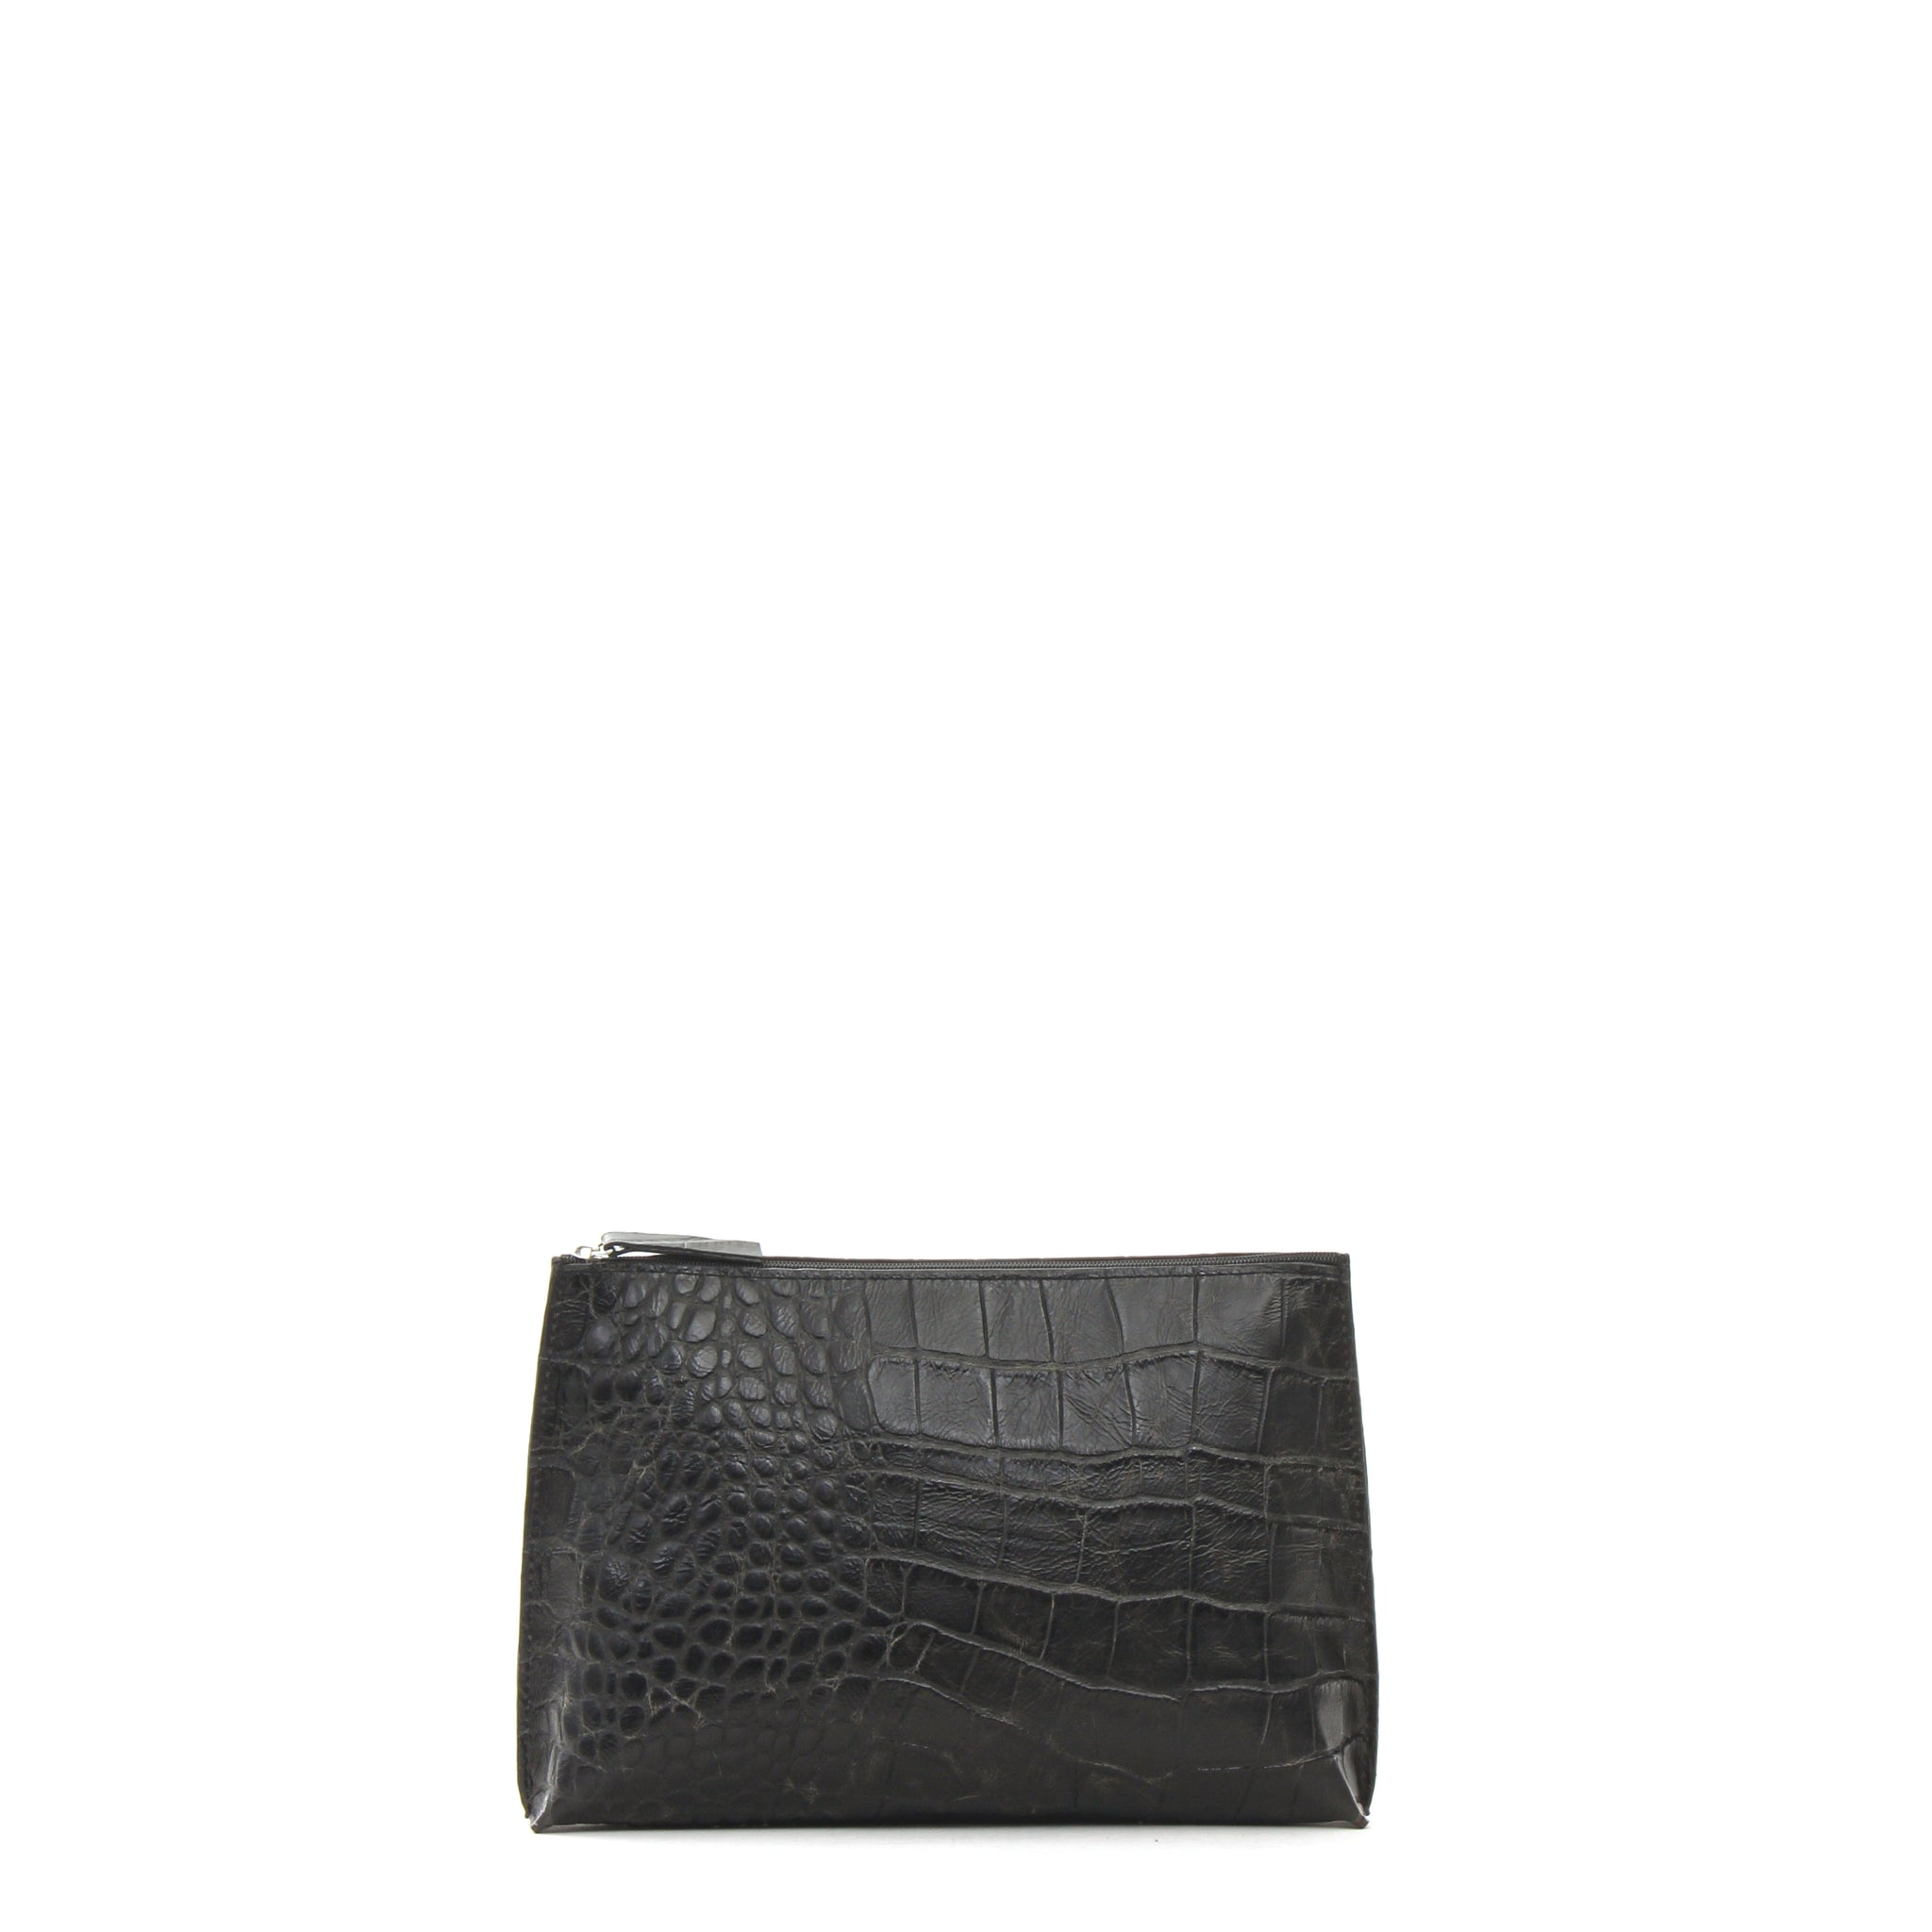 EVERYDAY POUCH VINTAGE BLACK EMBOSSED GATOR